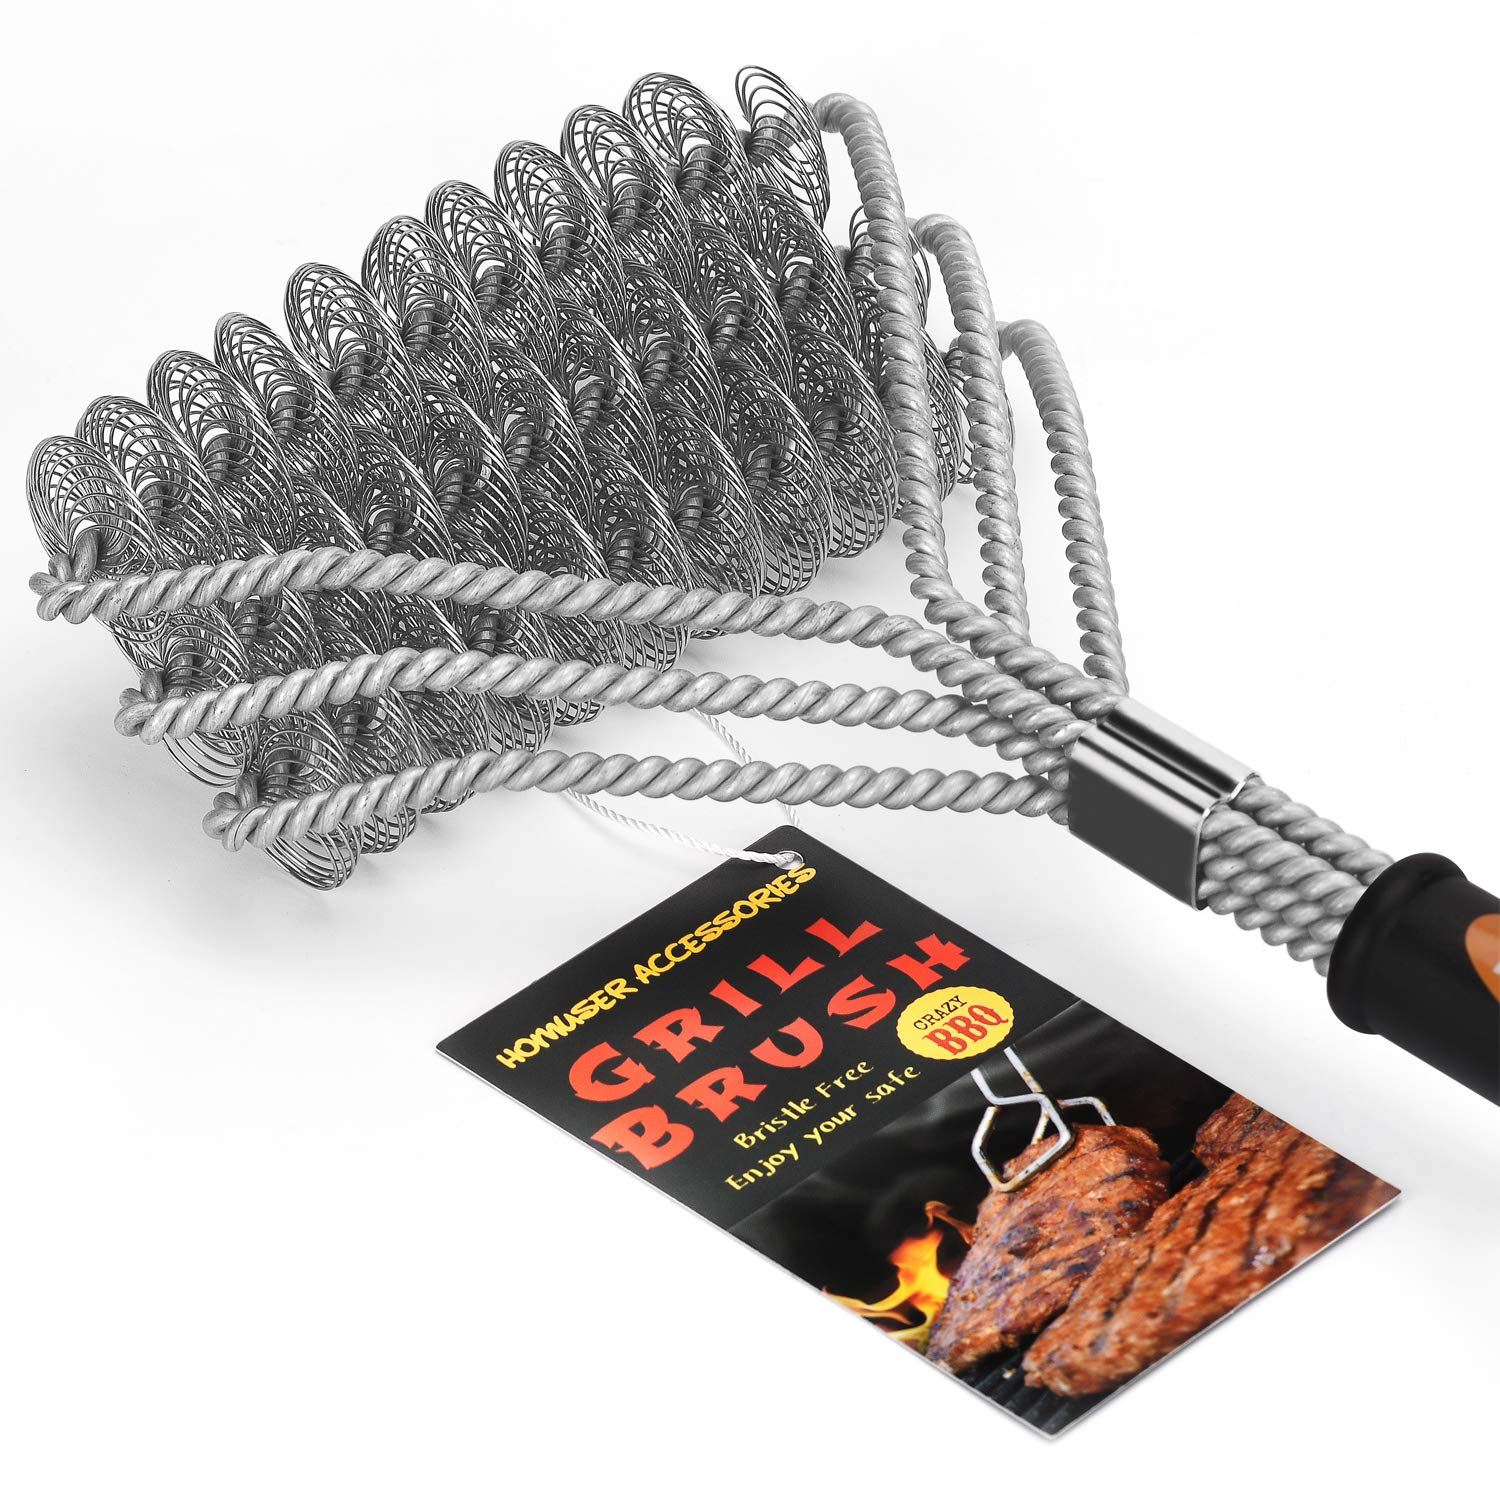 Homuser Grill Brush Bristle Free - Safe BBQ Cleaning Barbecue Brush 18'' Best Stainless Steel Grilling Accessories Cleaner for Weber Gas/Charcoal Porcelain/Ceramic/Iron/Steel Grates by Homuser